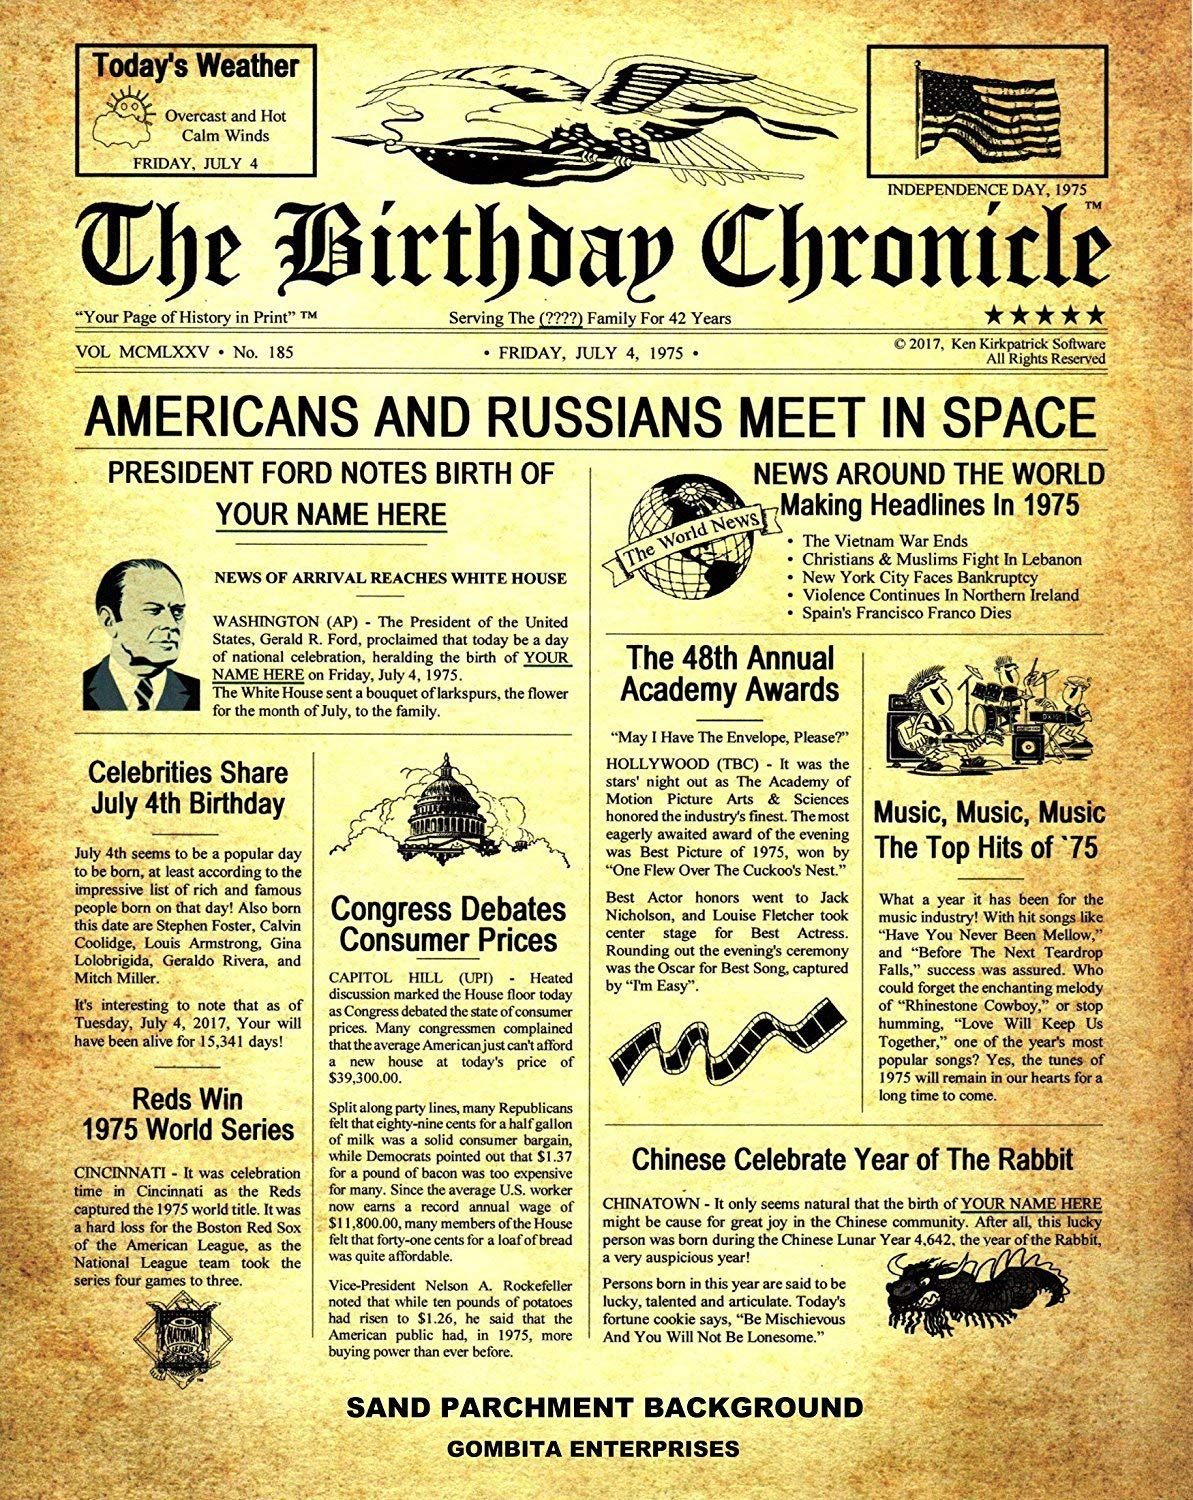 Buy THE BIRTHDAY CHRONICLE - What Happened On Your Birthday Headline